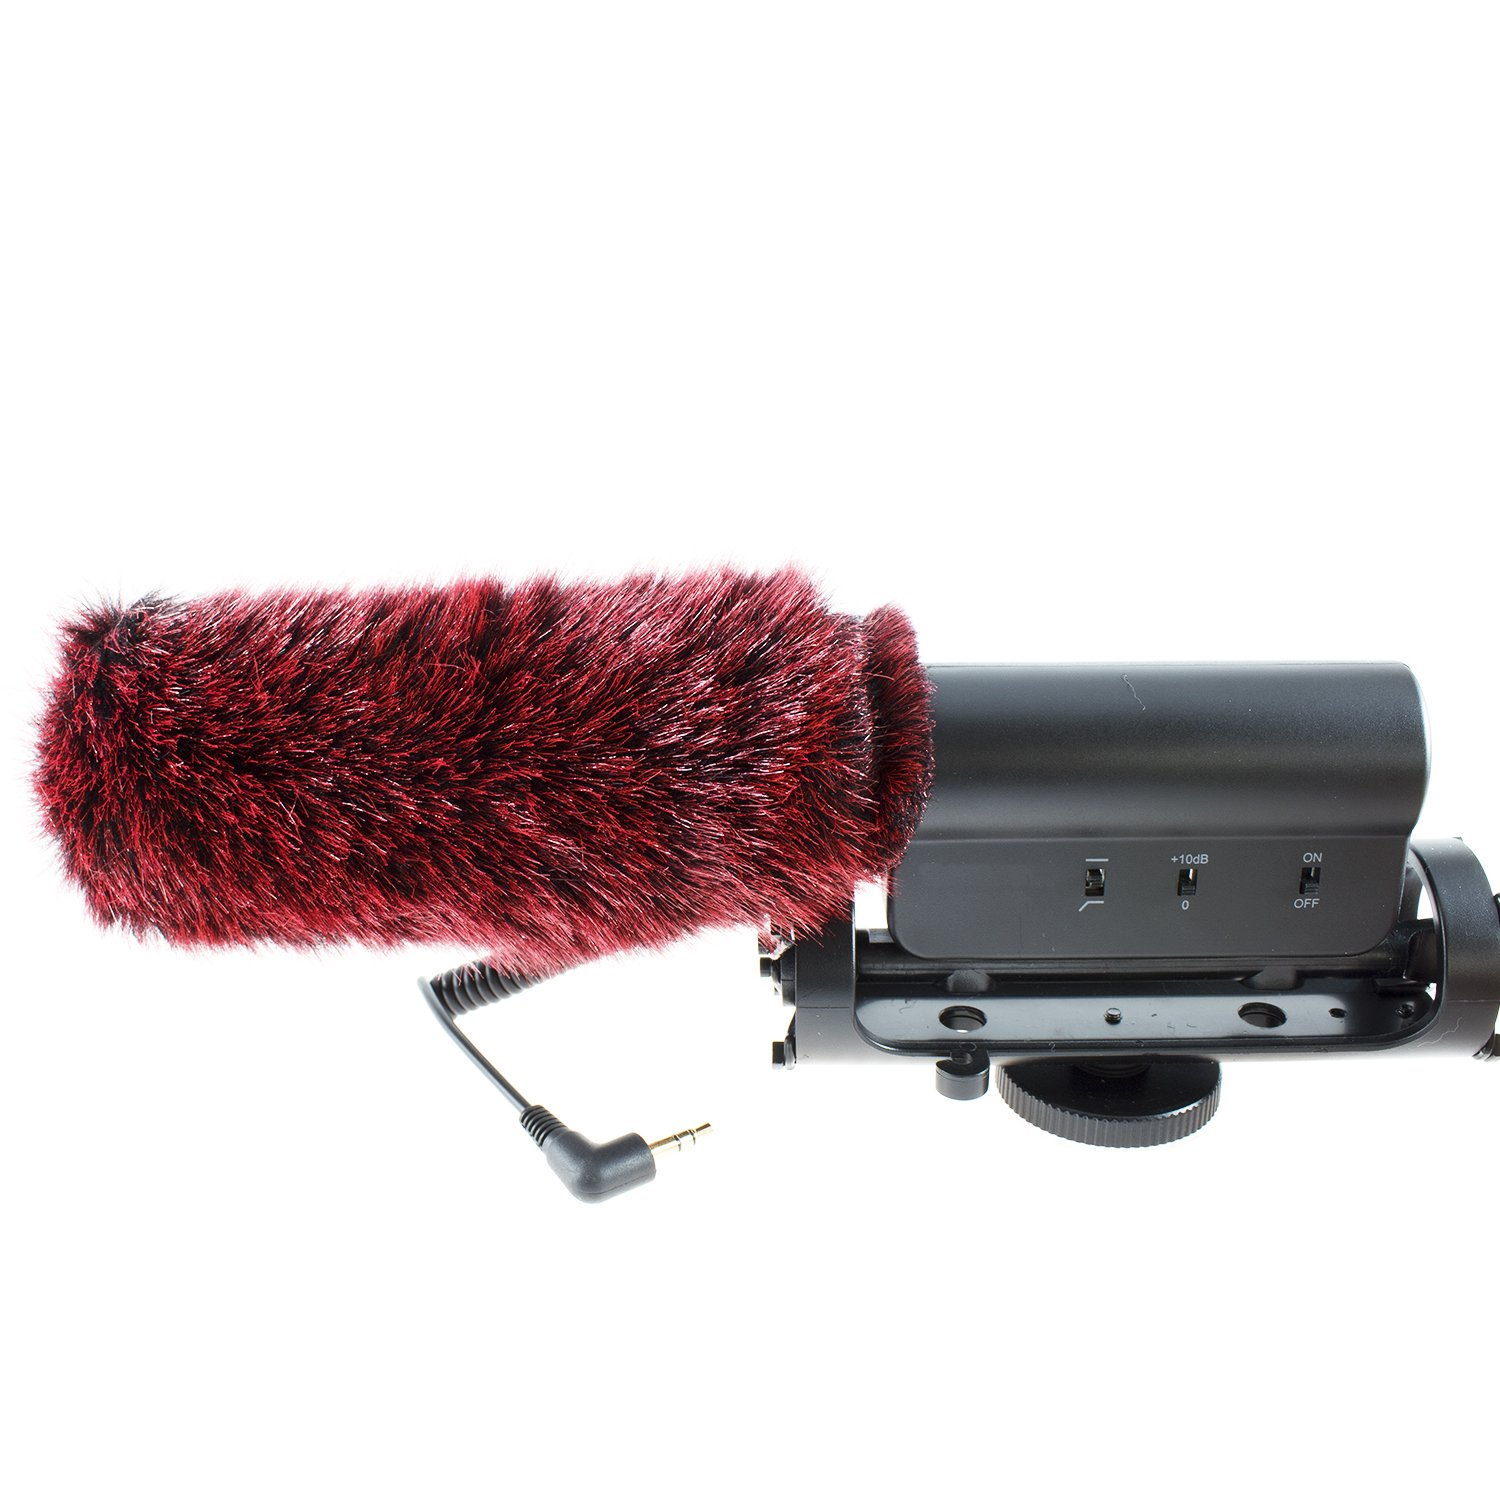 "Barcelonetta Star 598 Microphone Deadcat Windscreen fits on Takstar SGC 598 Mic Foam 5"" x 1.4"" (L x D), Wine"